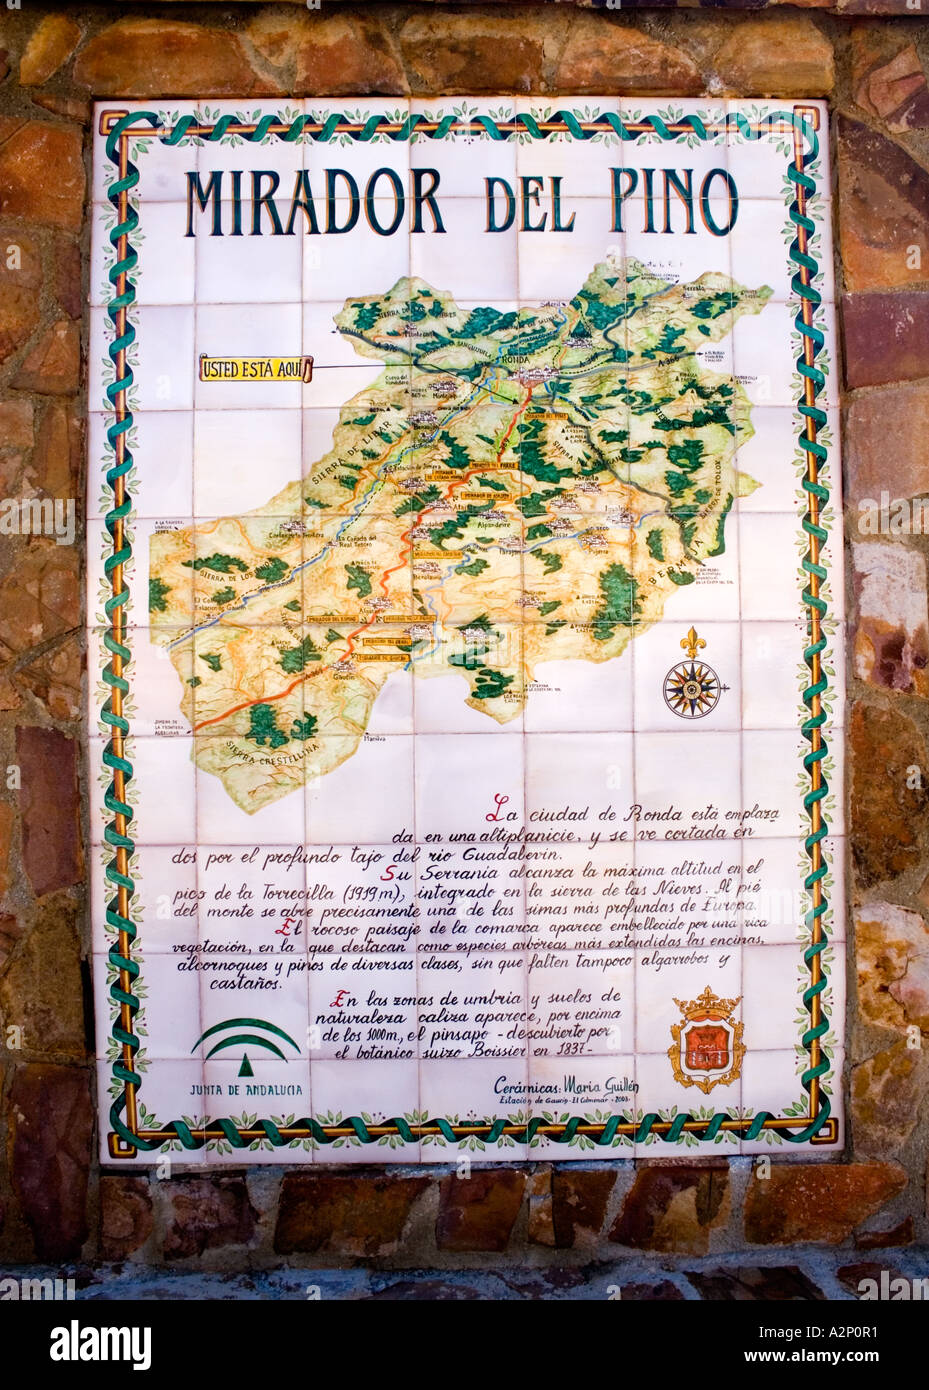 Tiled Tourist Map Nr Ronda Spain Photo Royalty Free Image – Tourist Map Of Ronda Spain